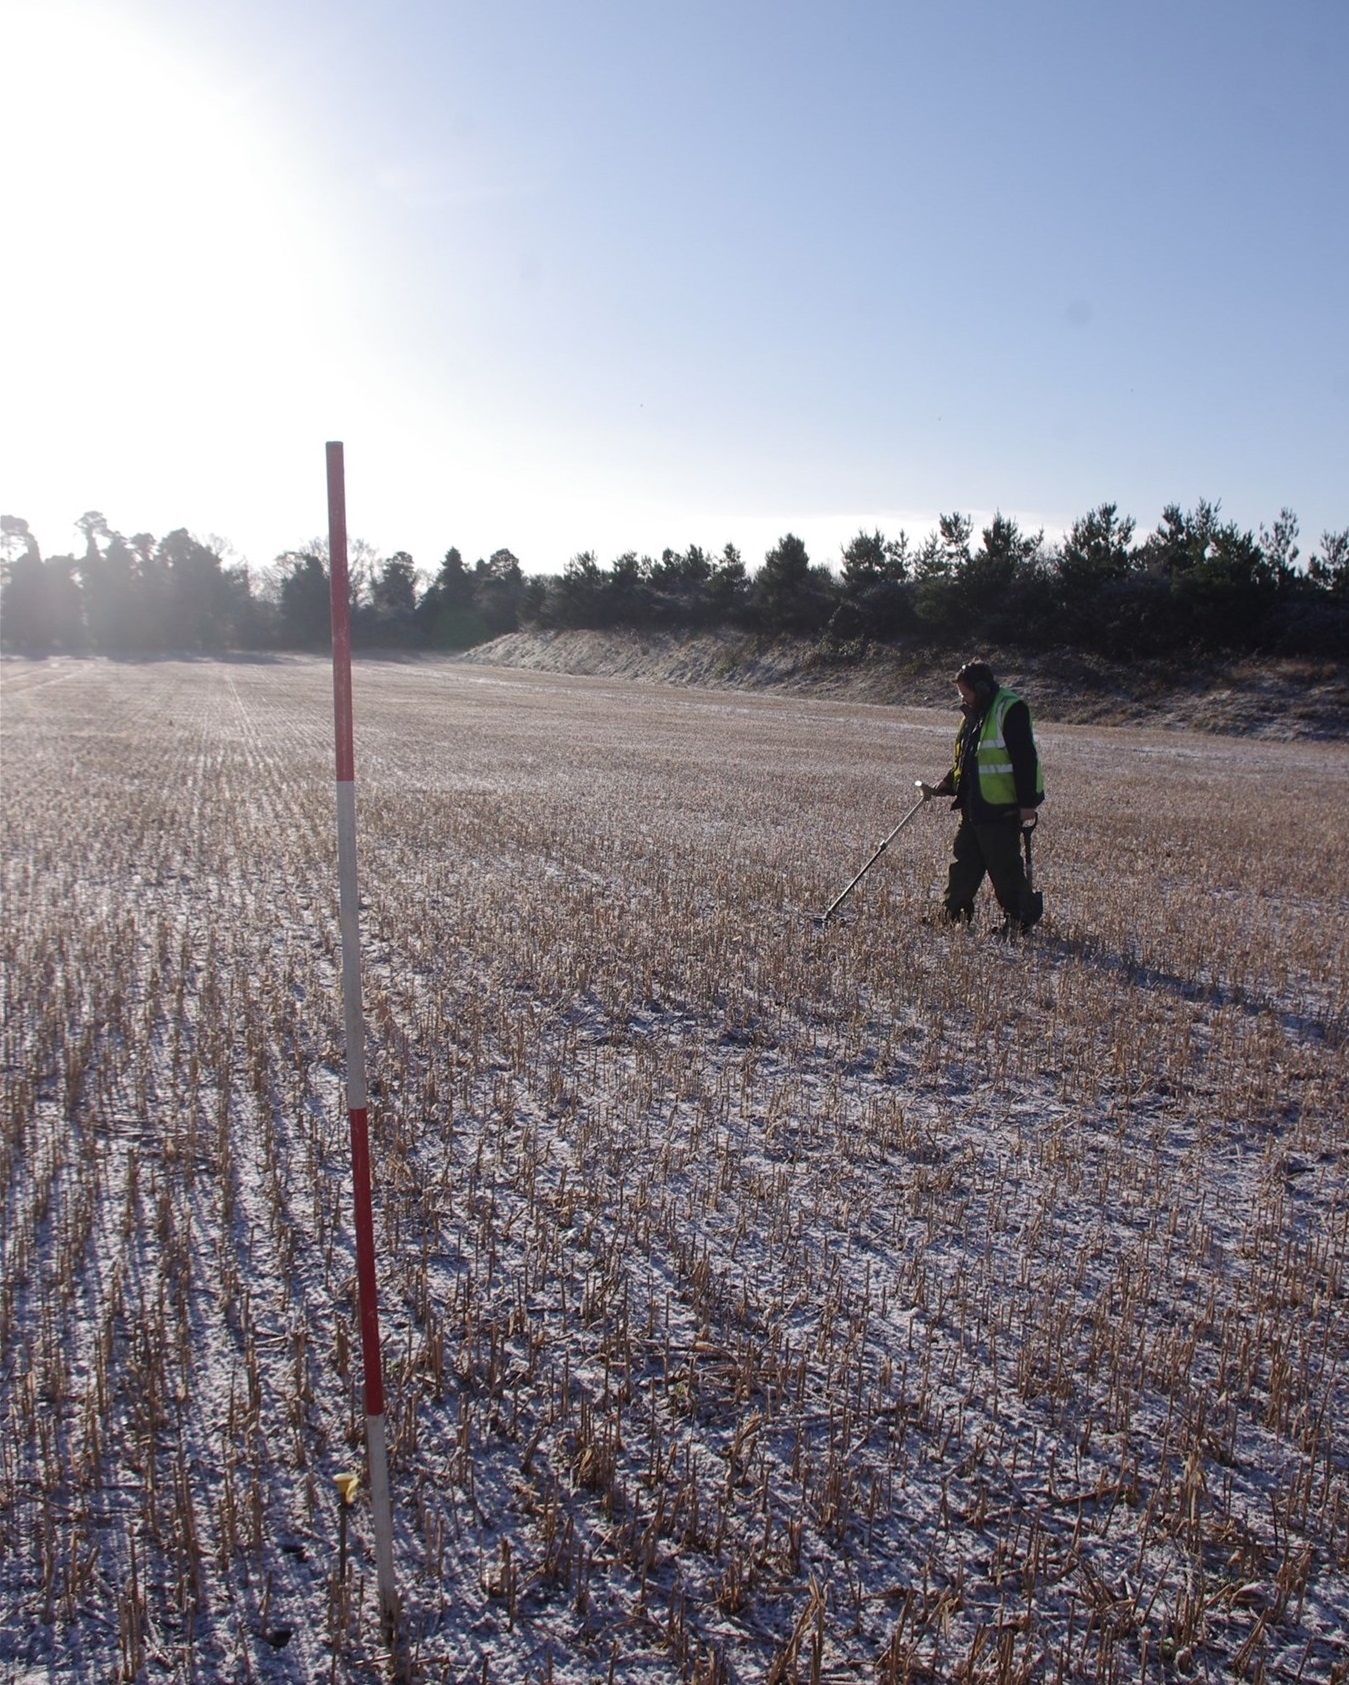 Metal detecting ahead of an excavation site strip at Barton Mills, Suffolk